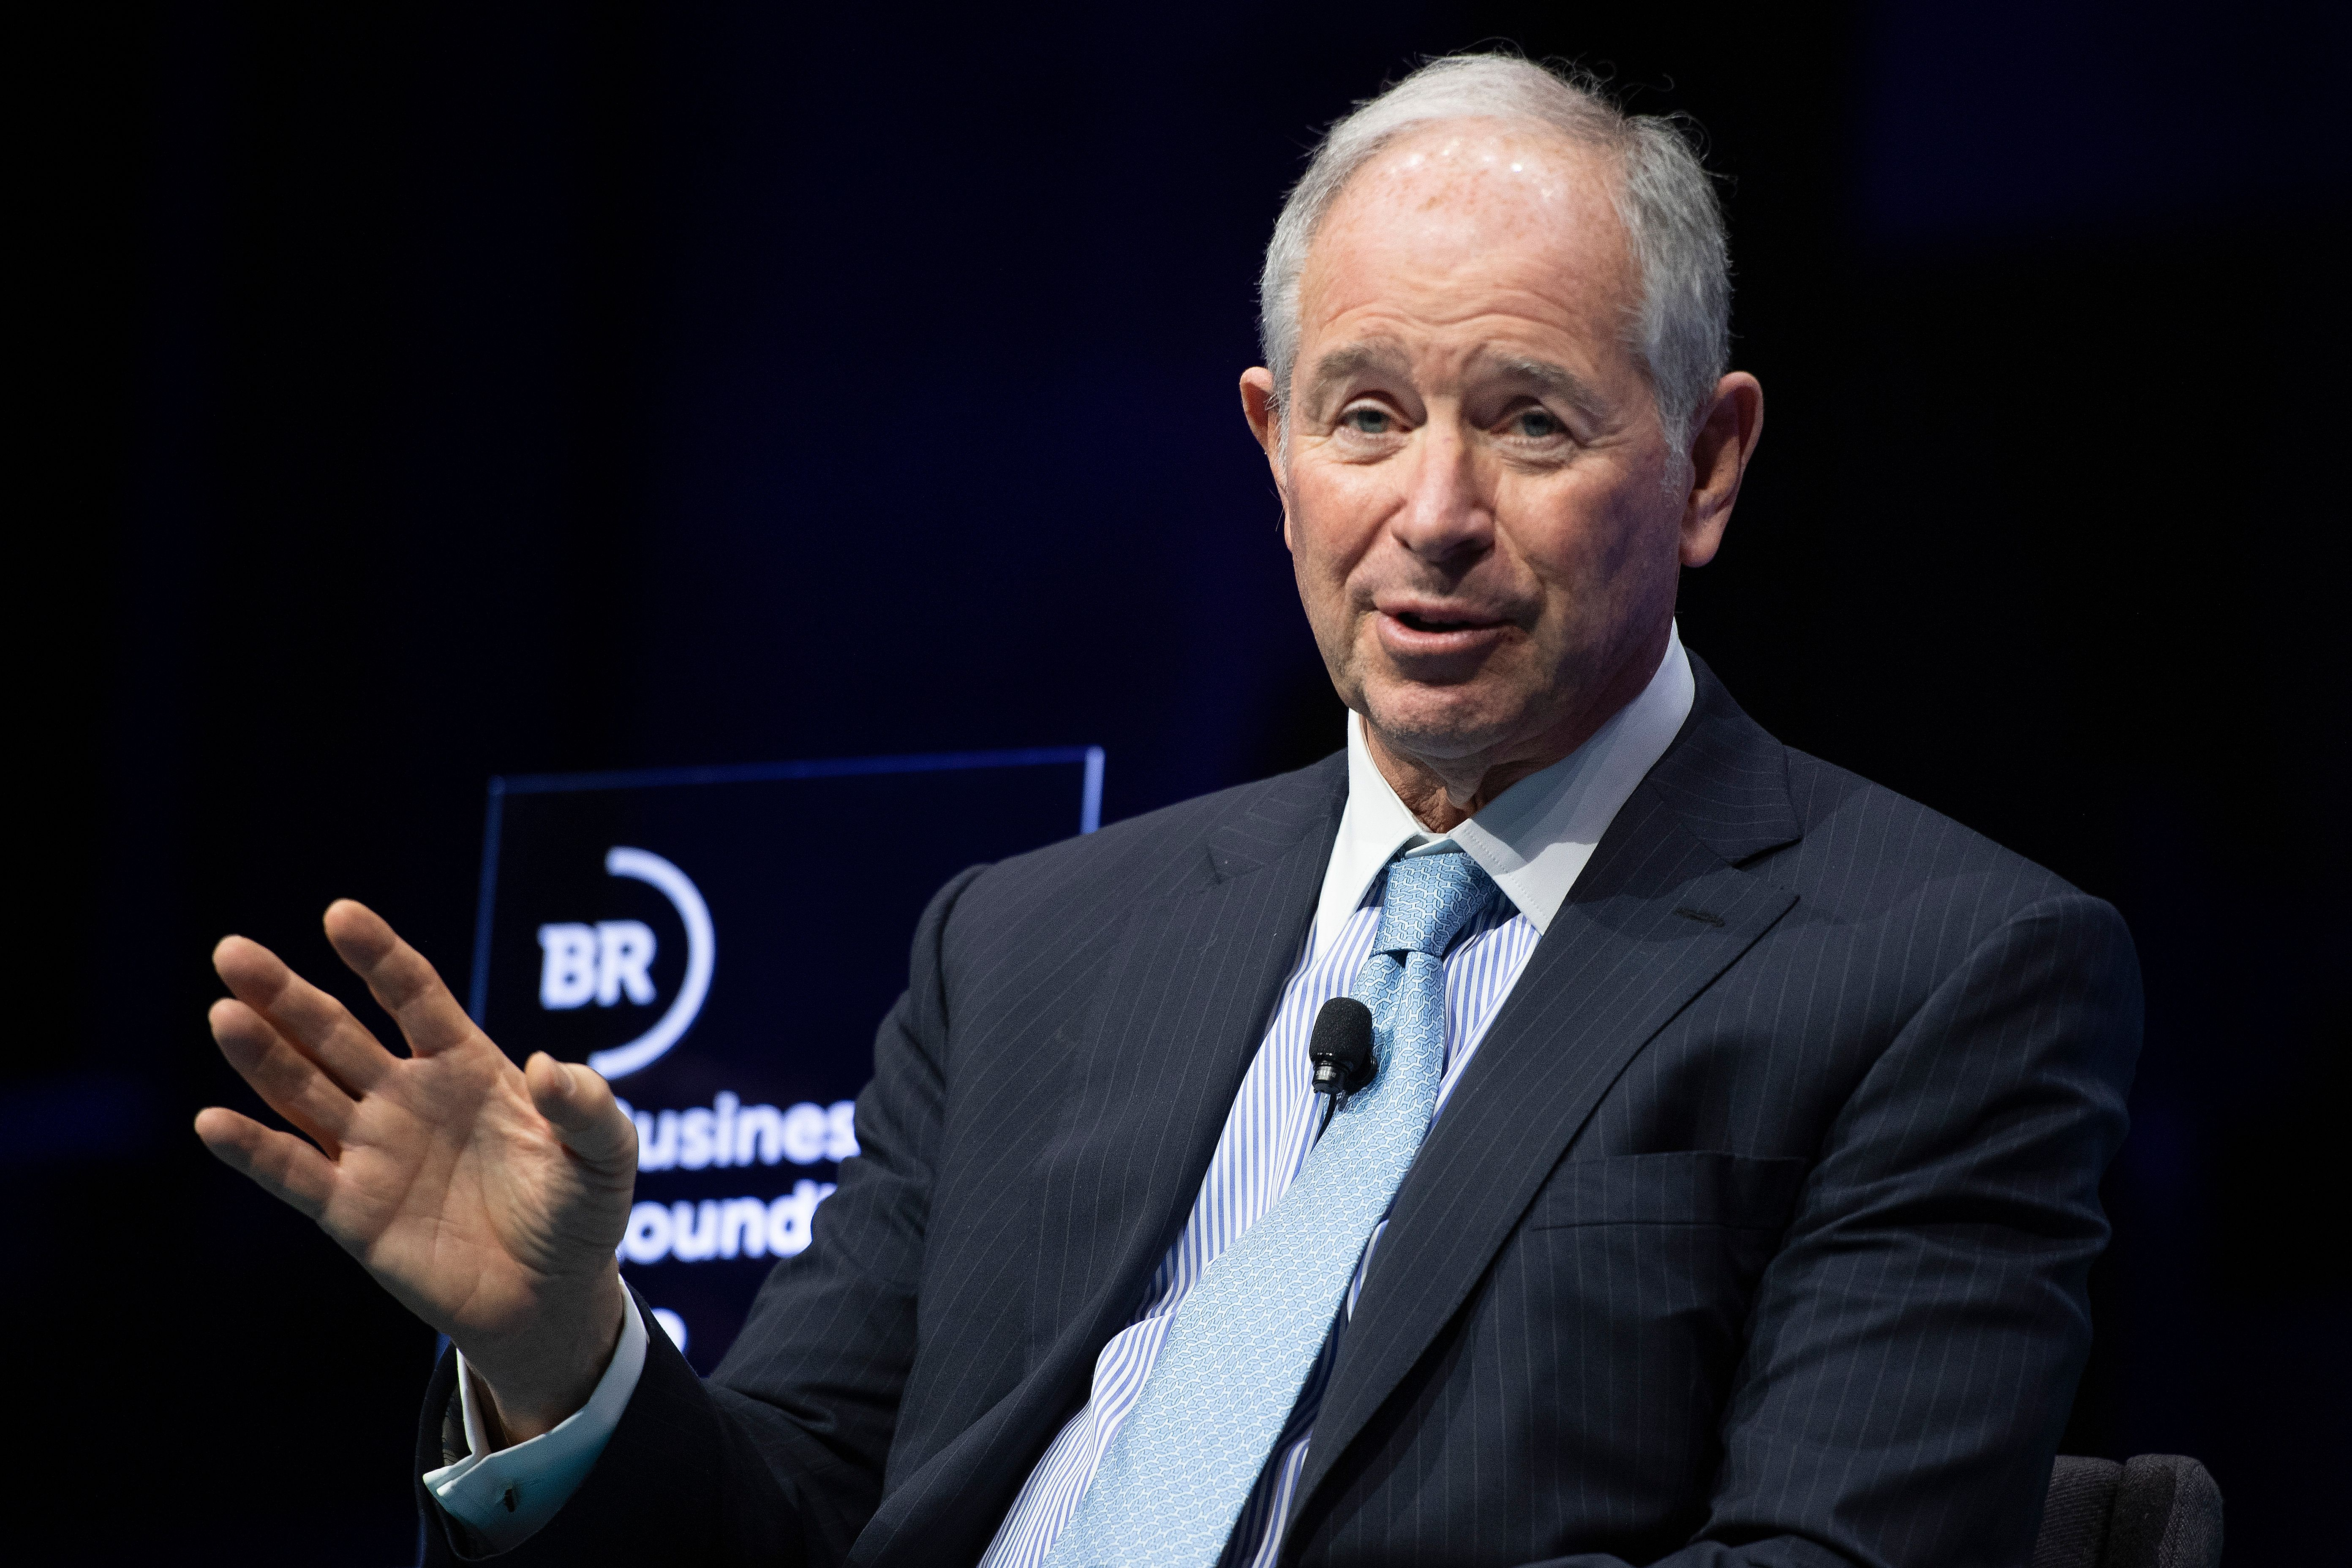 Blackstone CEO Steve Schwarzman speaking onstage.